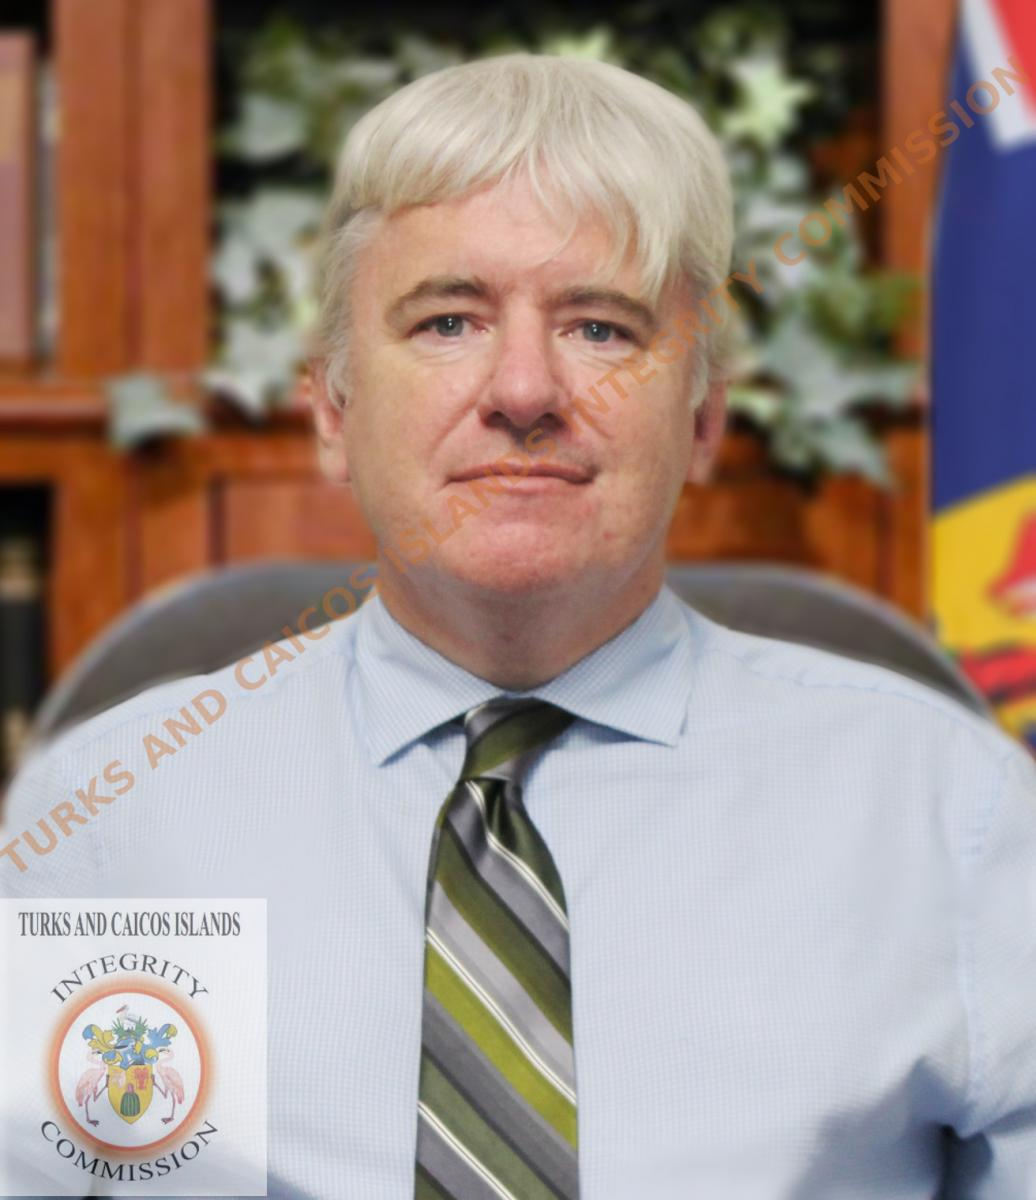 Mr. Martin Green - Commissioned Member of the TCI Integrity Commission